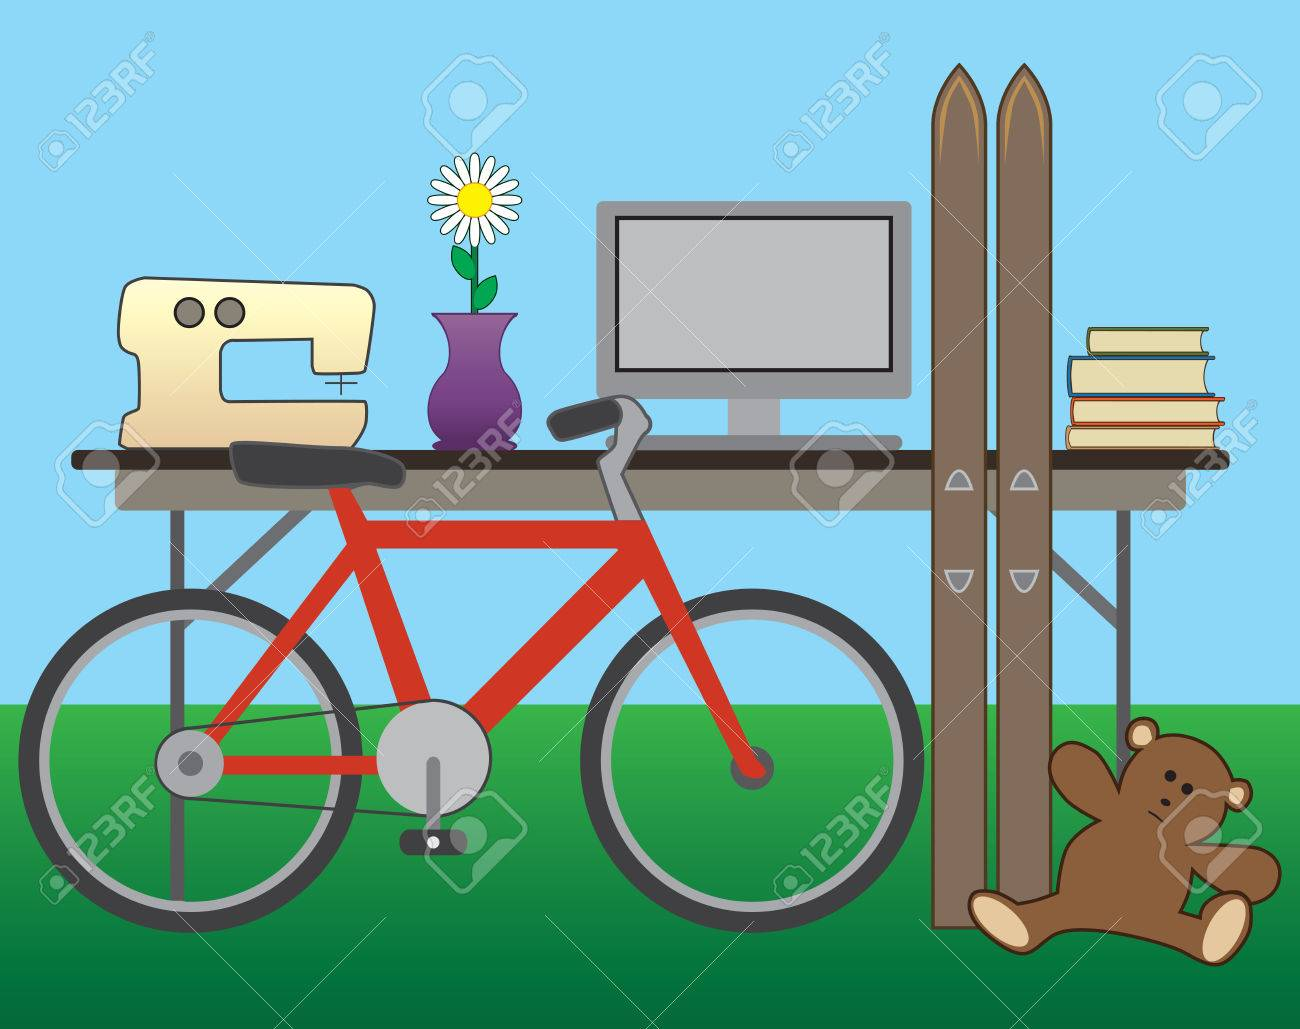 Backyard Items yard sale items on a folding table in a backyard royalty free